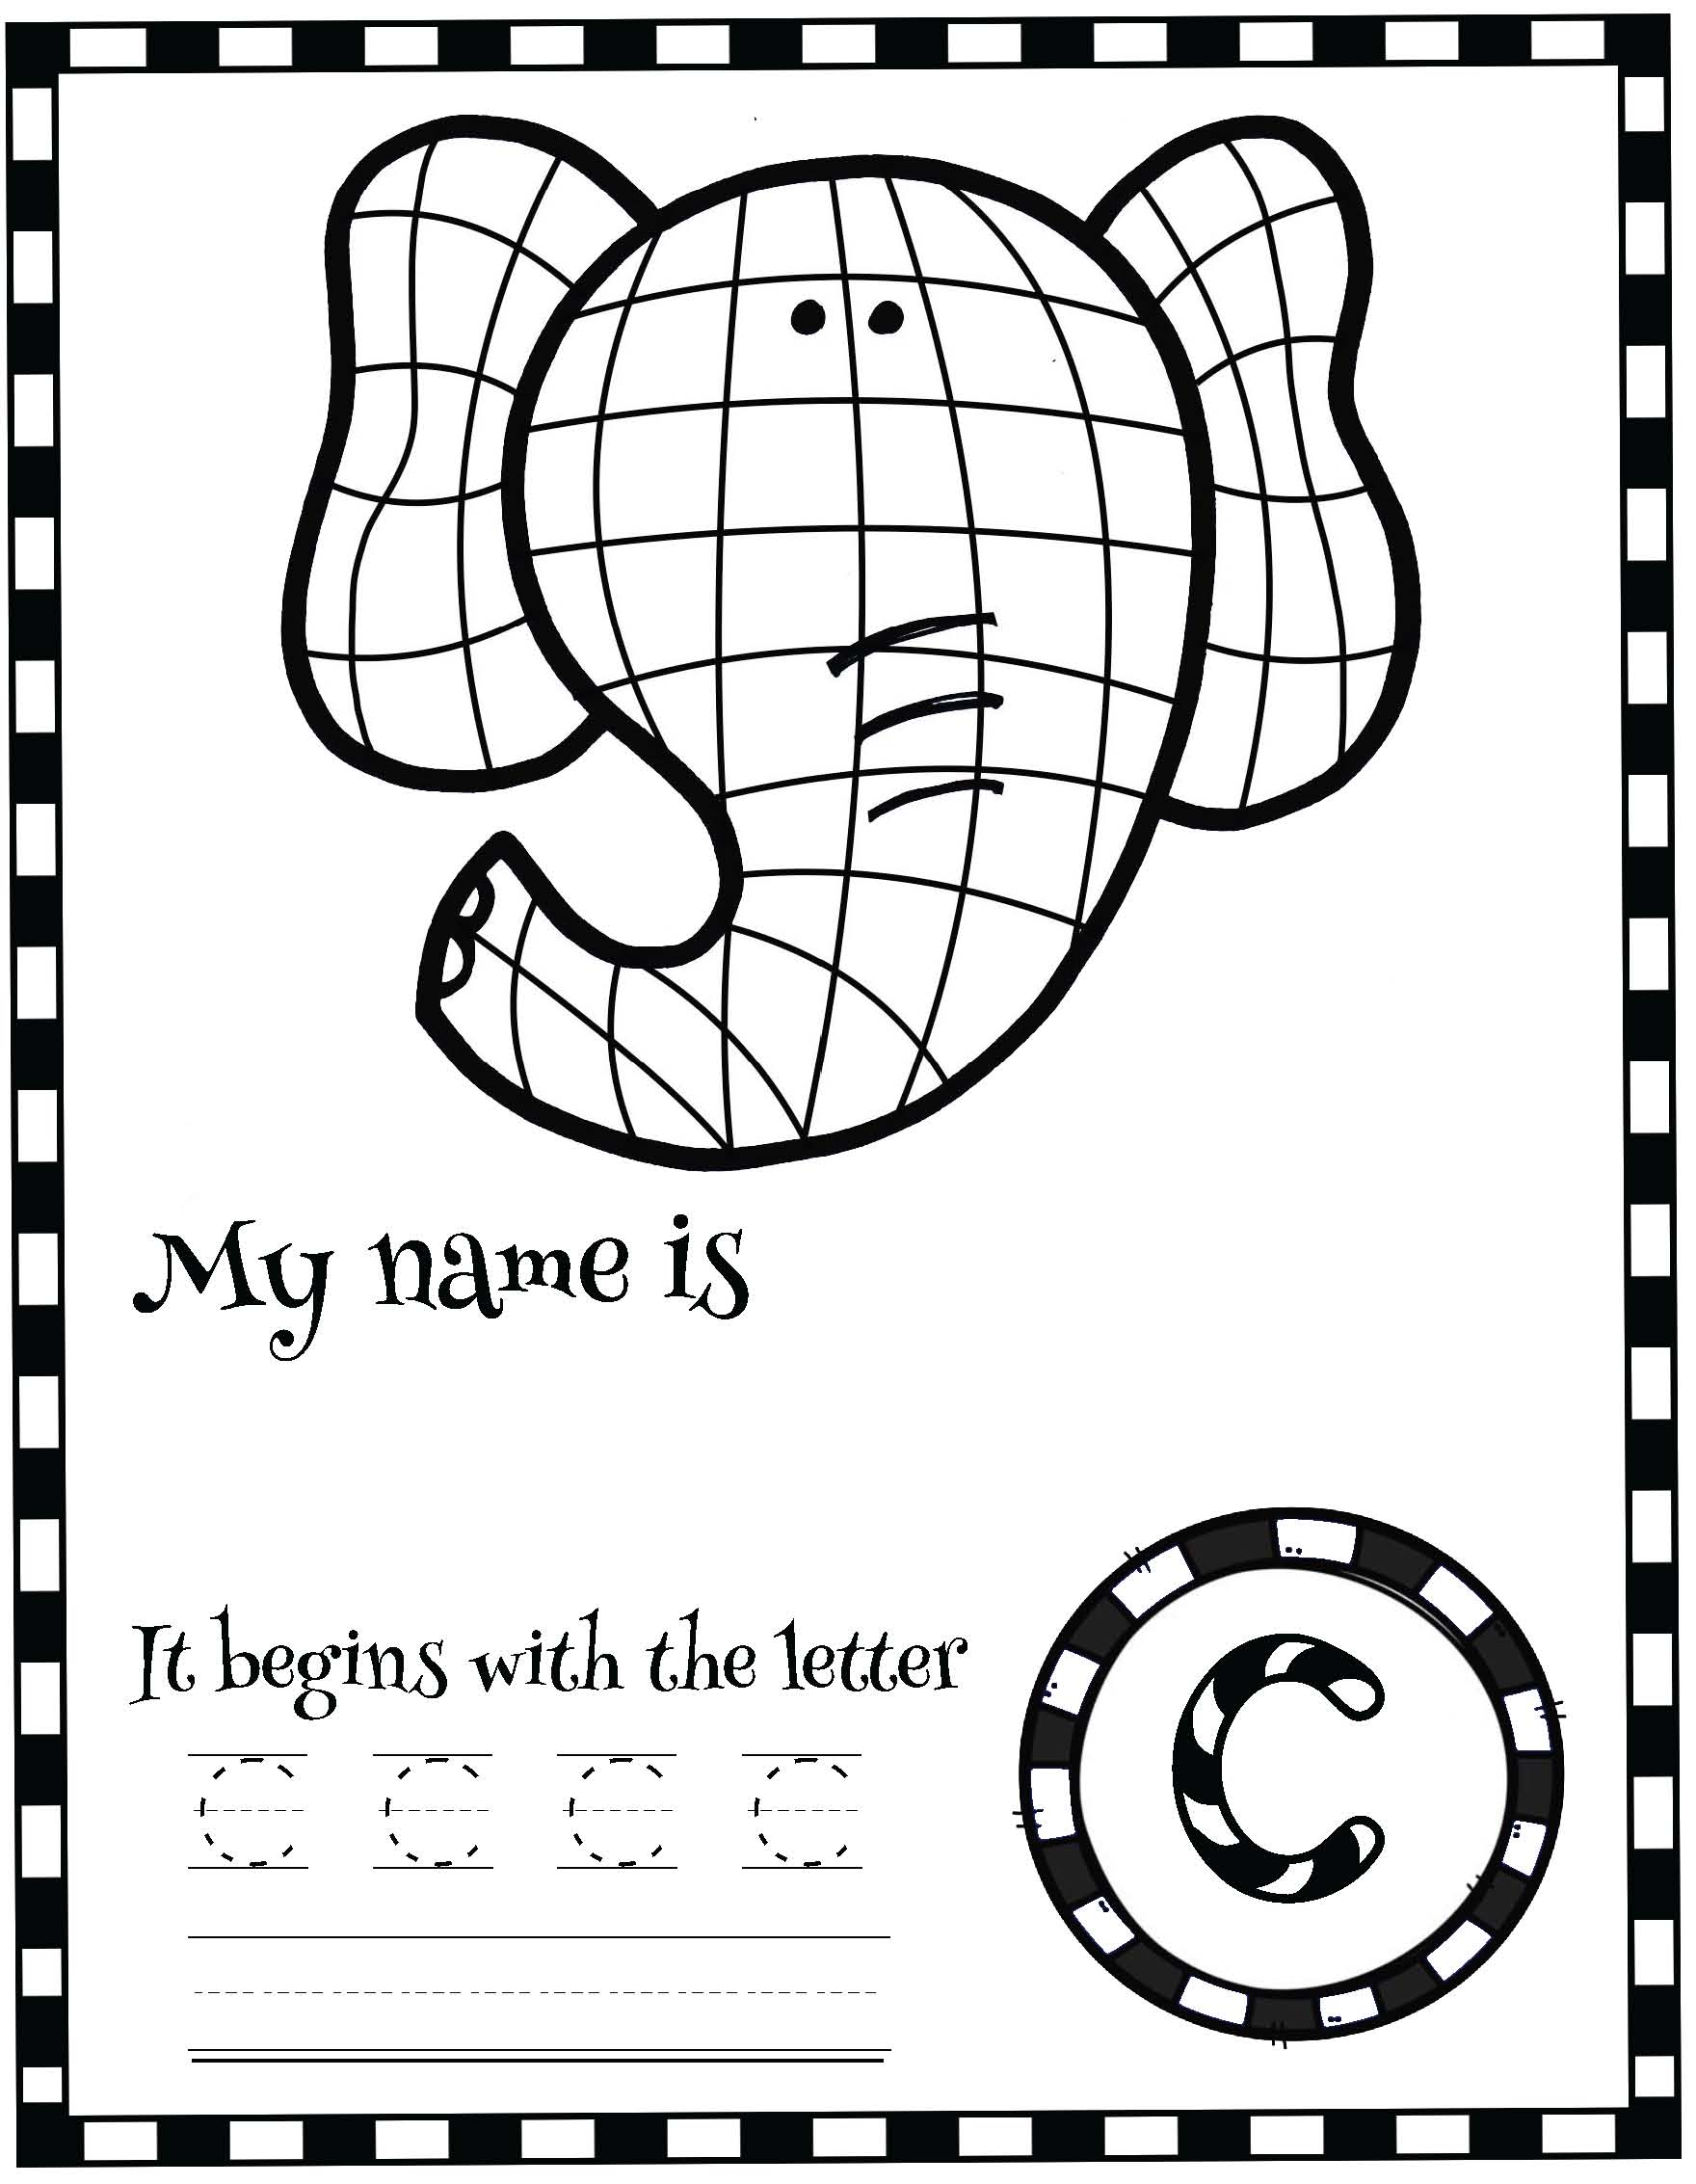 Elmer the elephant activities, name writing activities, name writing crafts, back to school name activities, back to school ideas, icebreakers, elephant crafts, elephant activities, elephant crafts, Elmer crafts, back to school bulletin boards, Elmer activities